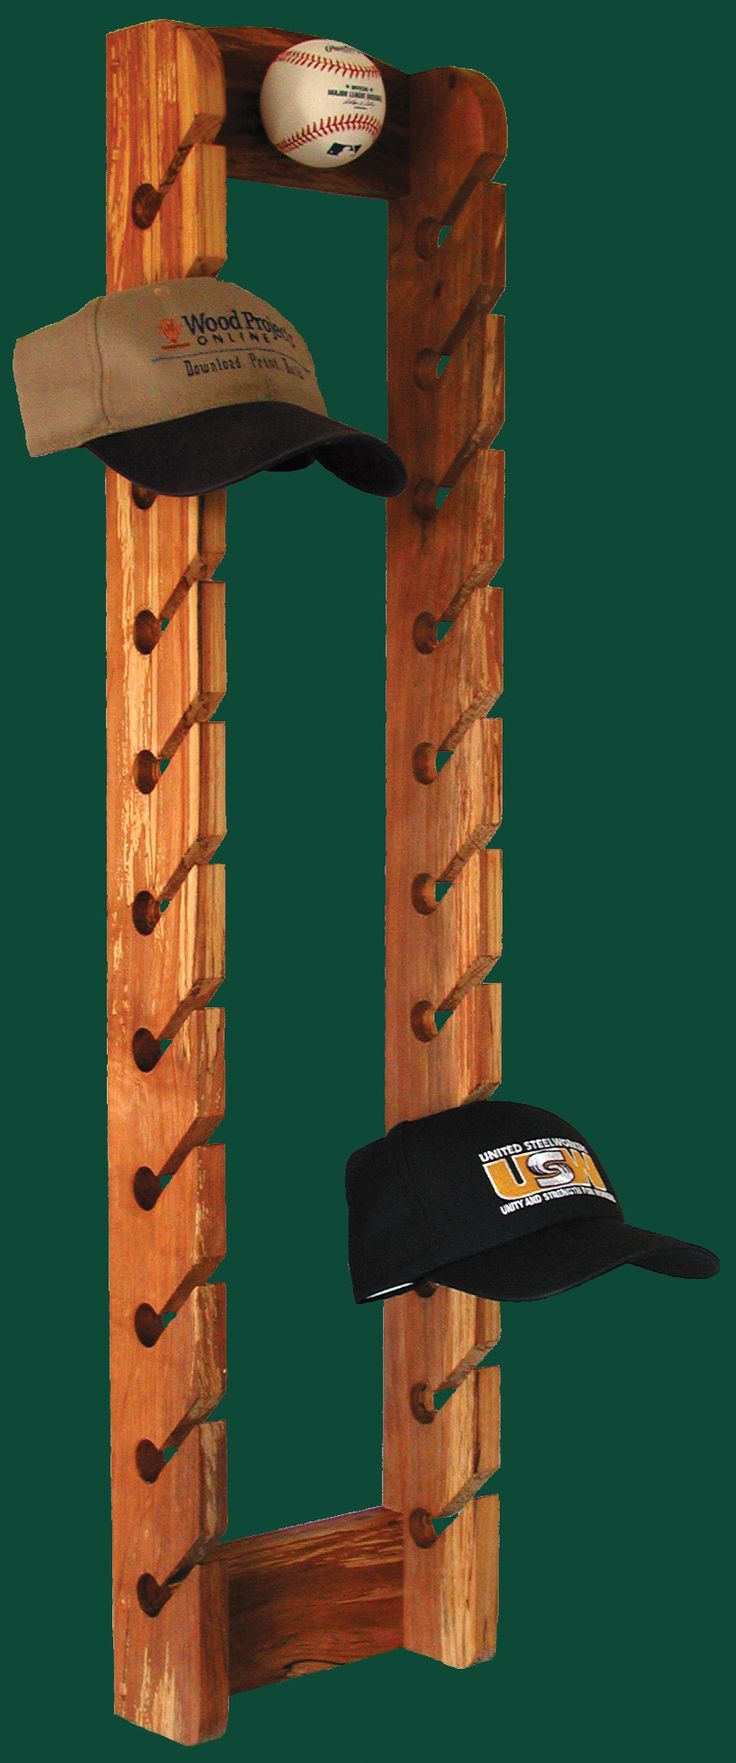 25+ best ideas about Baseball hat display on Pinterest | Baseball cap rack, Hat racks and ...